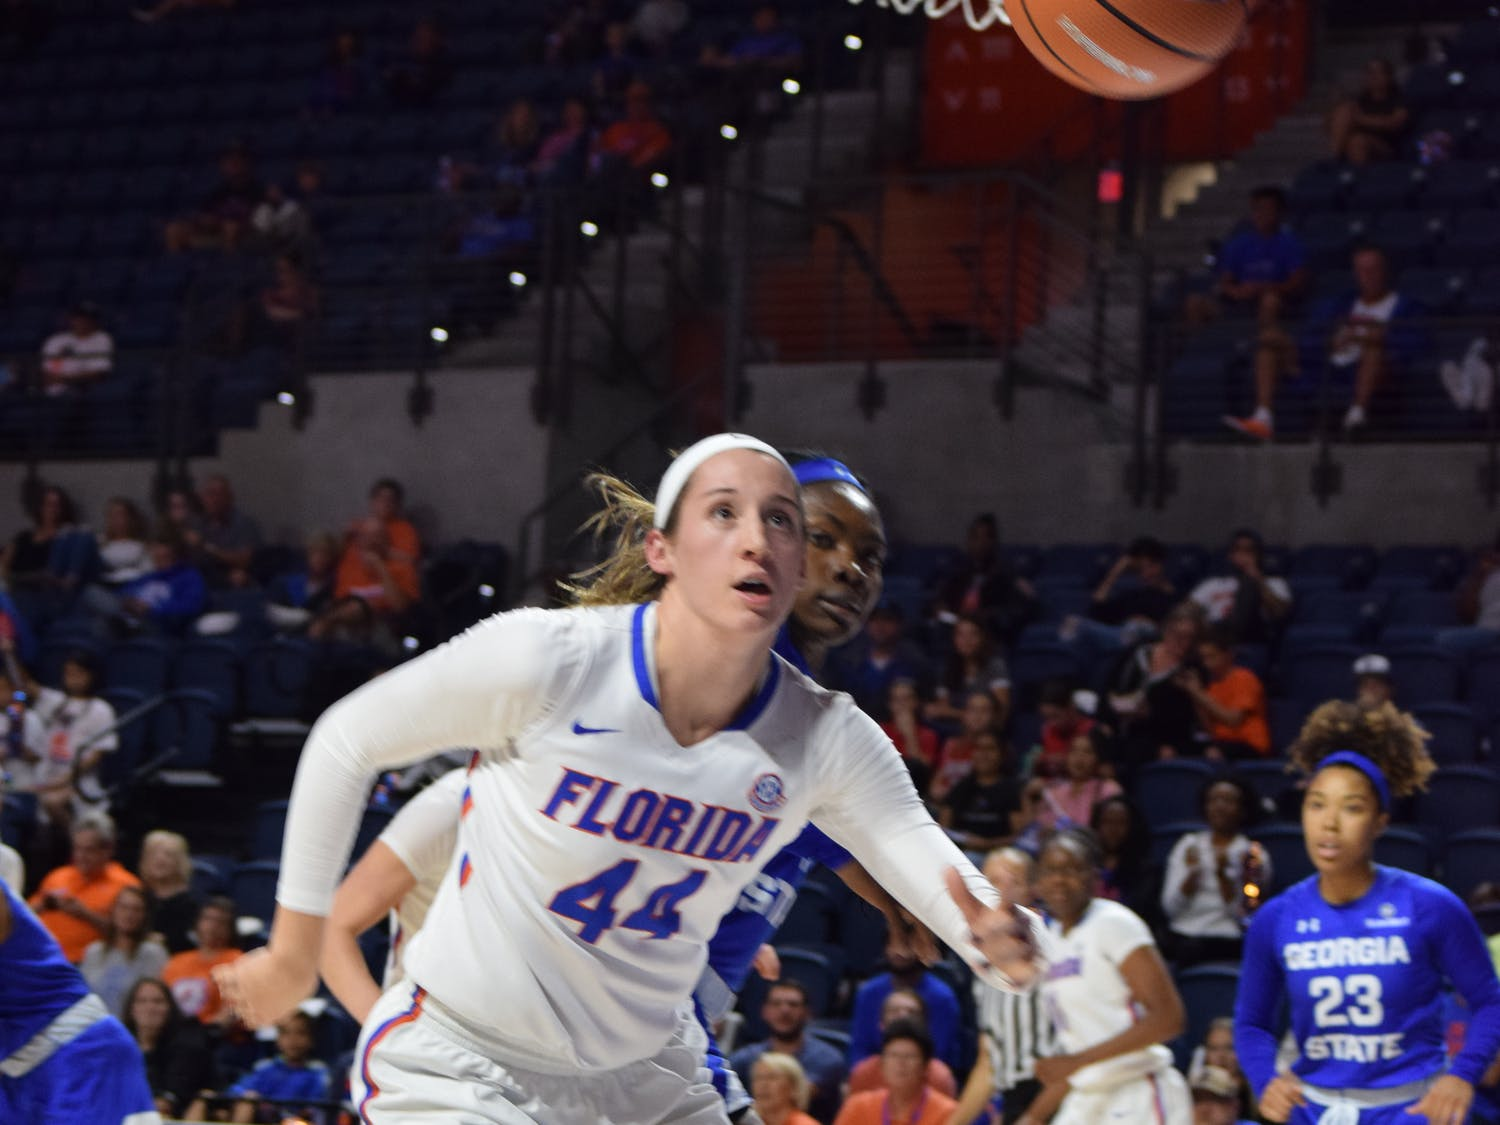 Florida forward Haley Lorenzen recorded a double-double with 20 points and 11 rebounds in the Gators 69-59 win against Jacksonville on Tuesday.